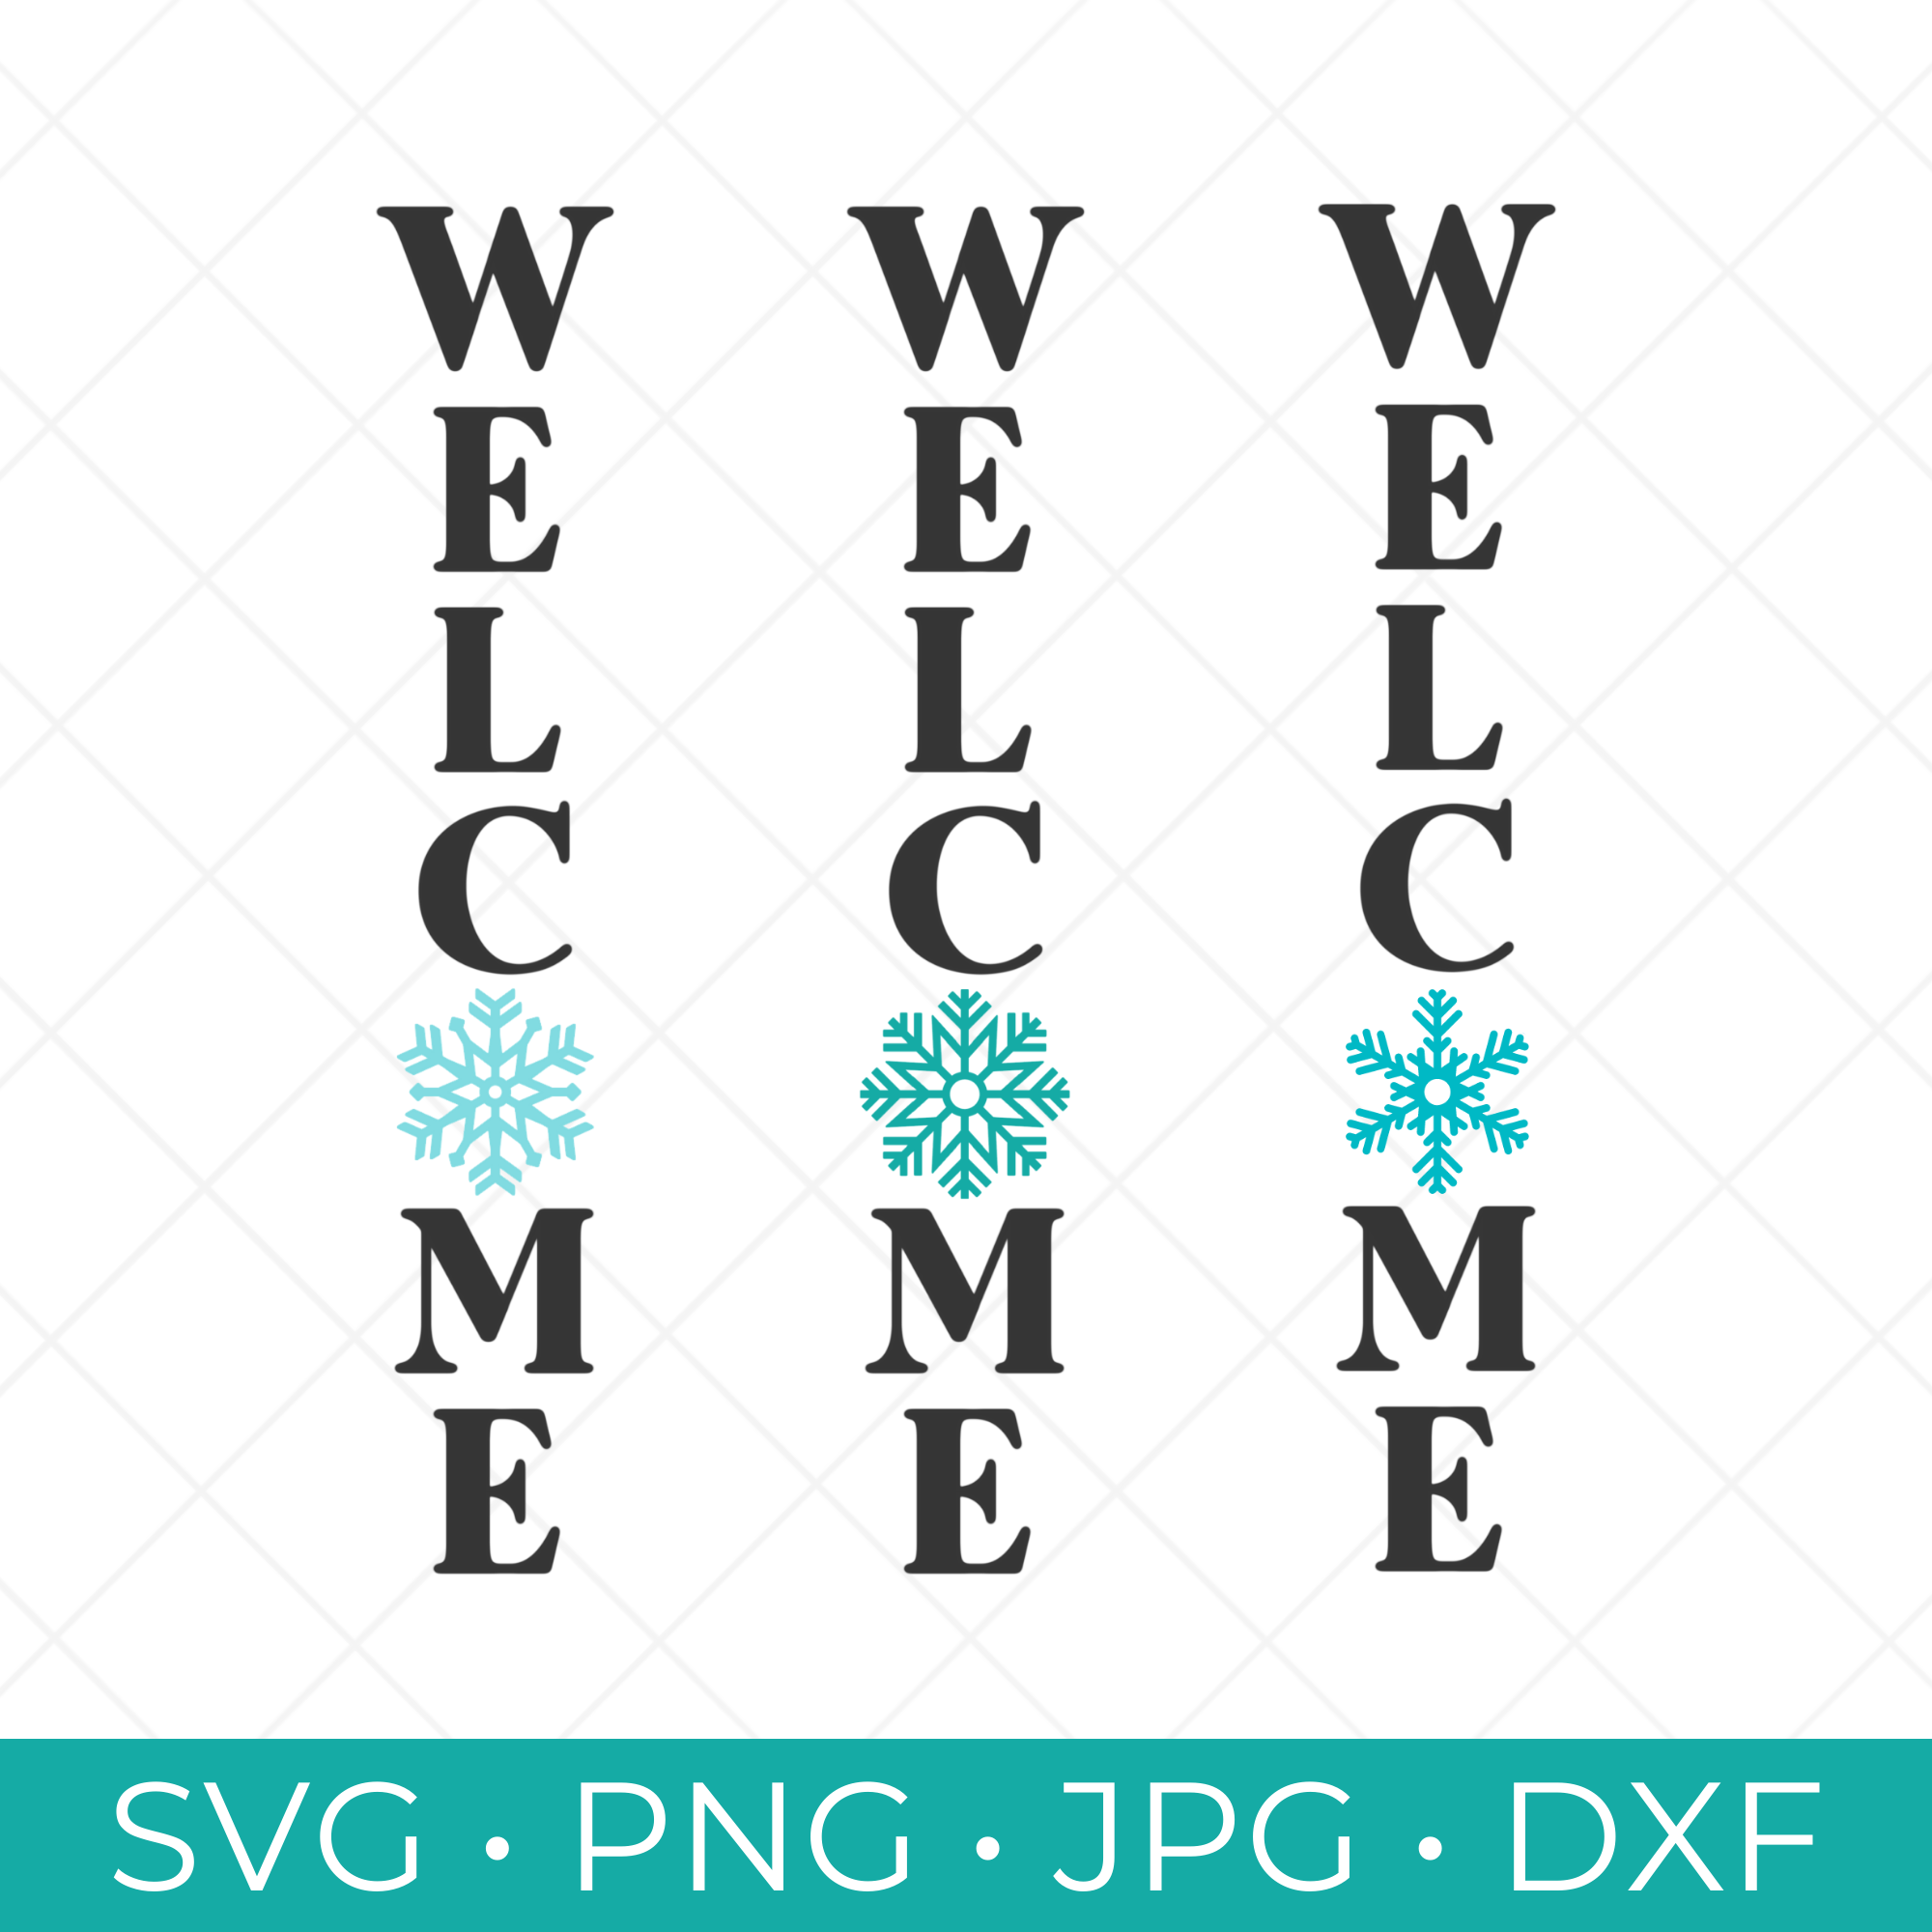 Welcome Snowflake SVG Collection - 3 Free Winter SVG Cut Files